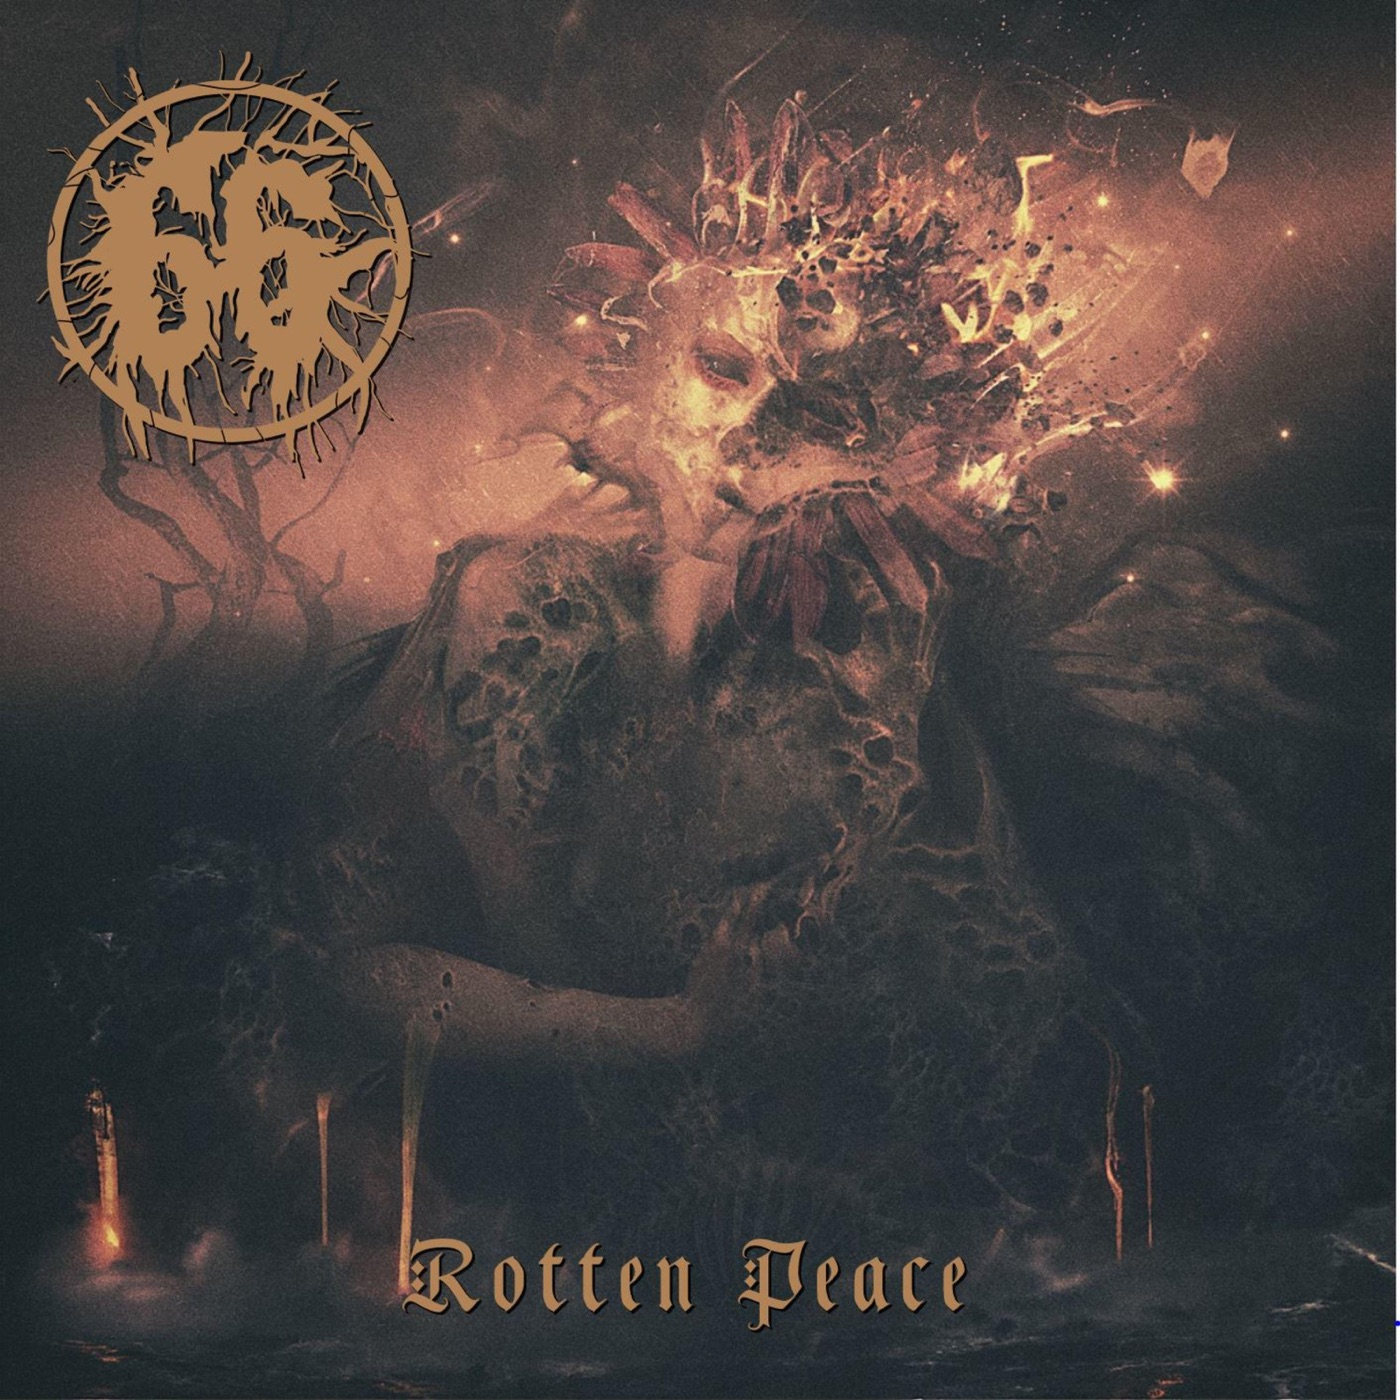 Order 66 - Rotten Peace [EP] (2019)